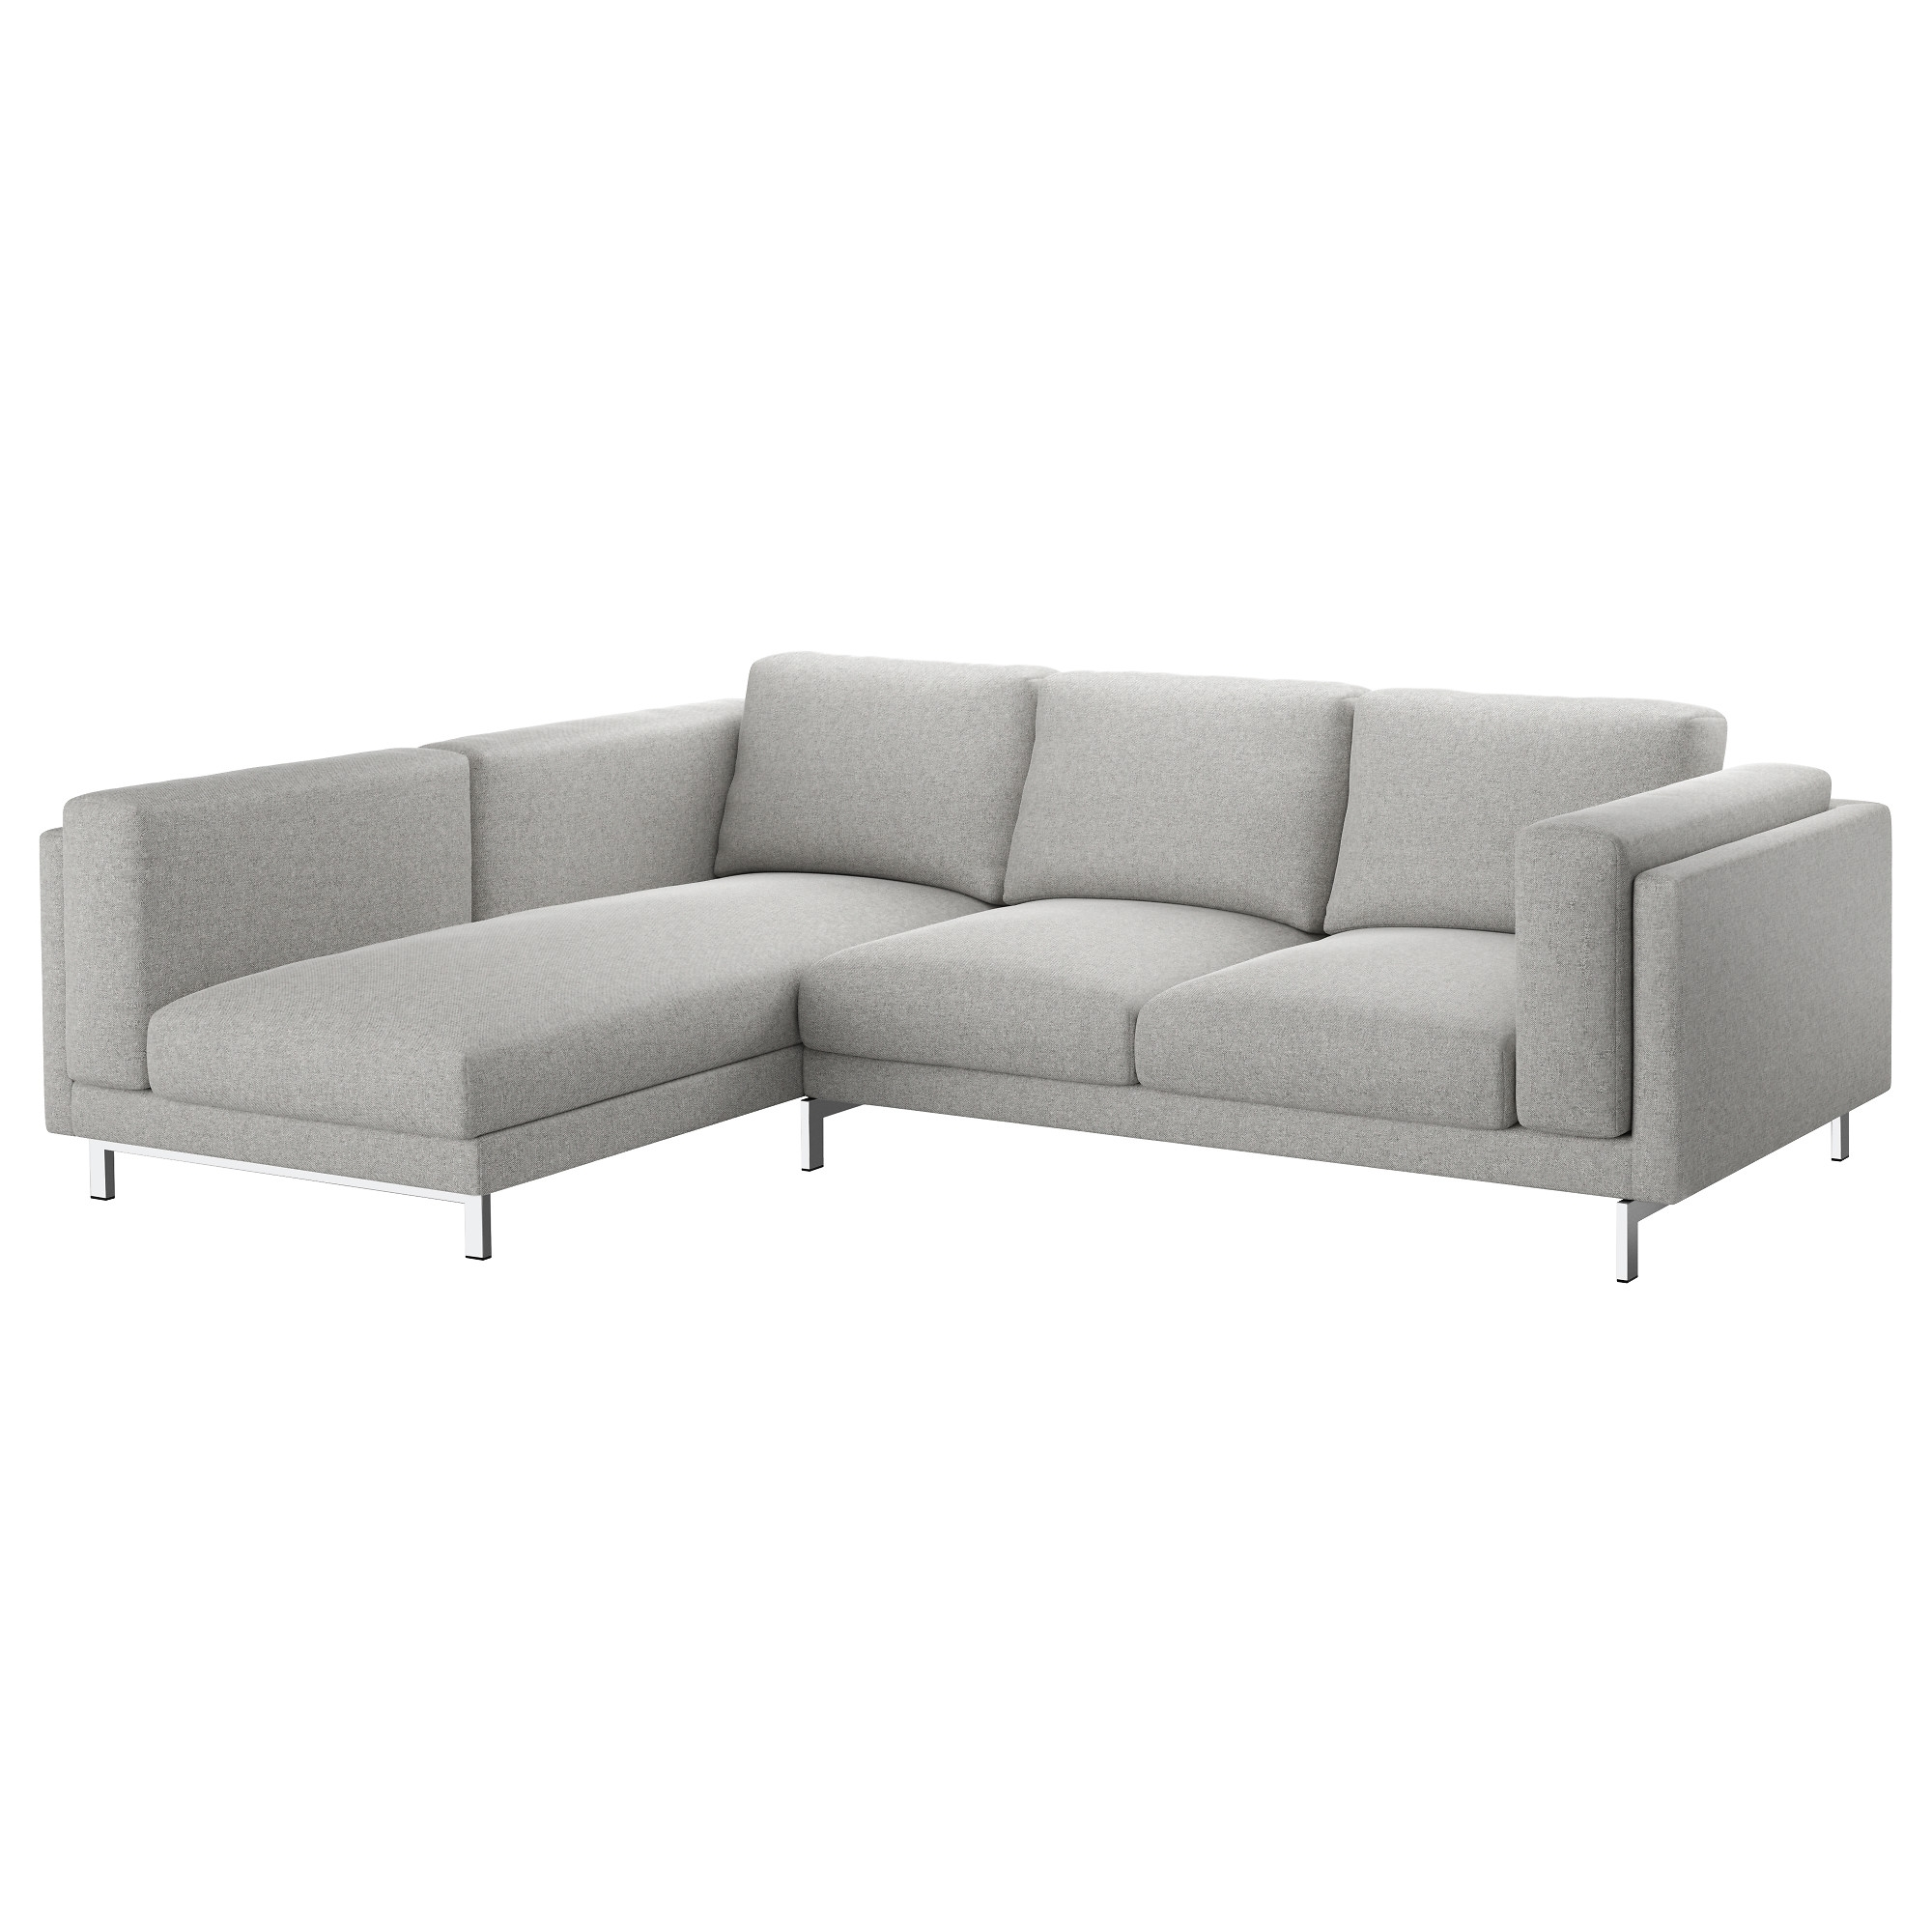 Nockeby Sofa - With Chaise, Left/tallmyra White/black, Chrome Plated inside Sectional Sofas At Ikea (Image 10 of 15)